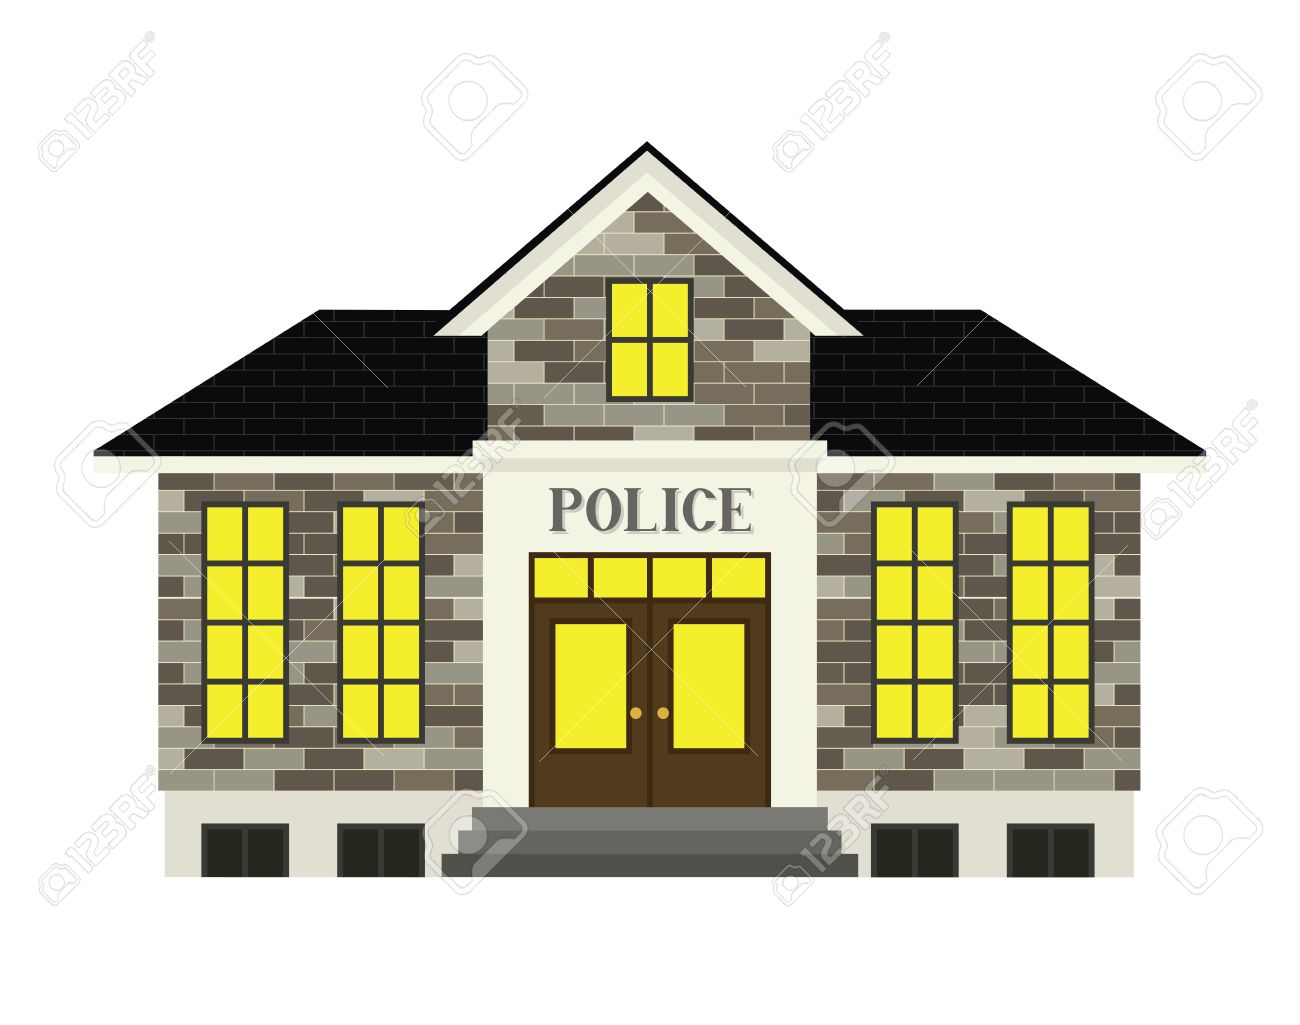 Police station clipart  A Simple Stylized Police Station Illustration Royalty Free ...